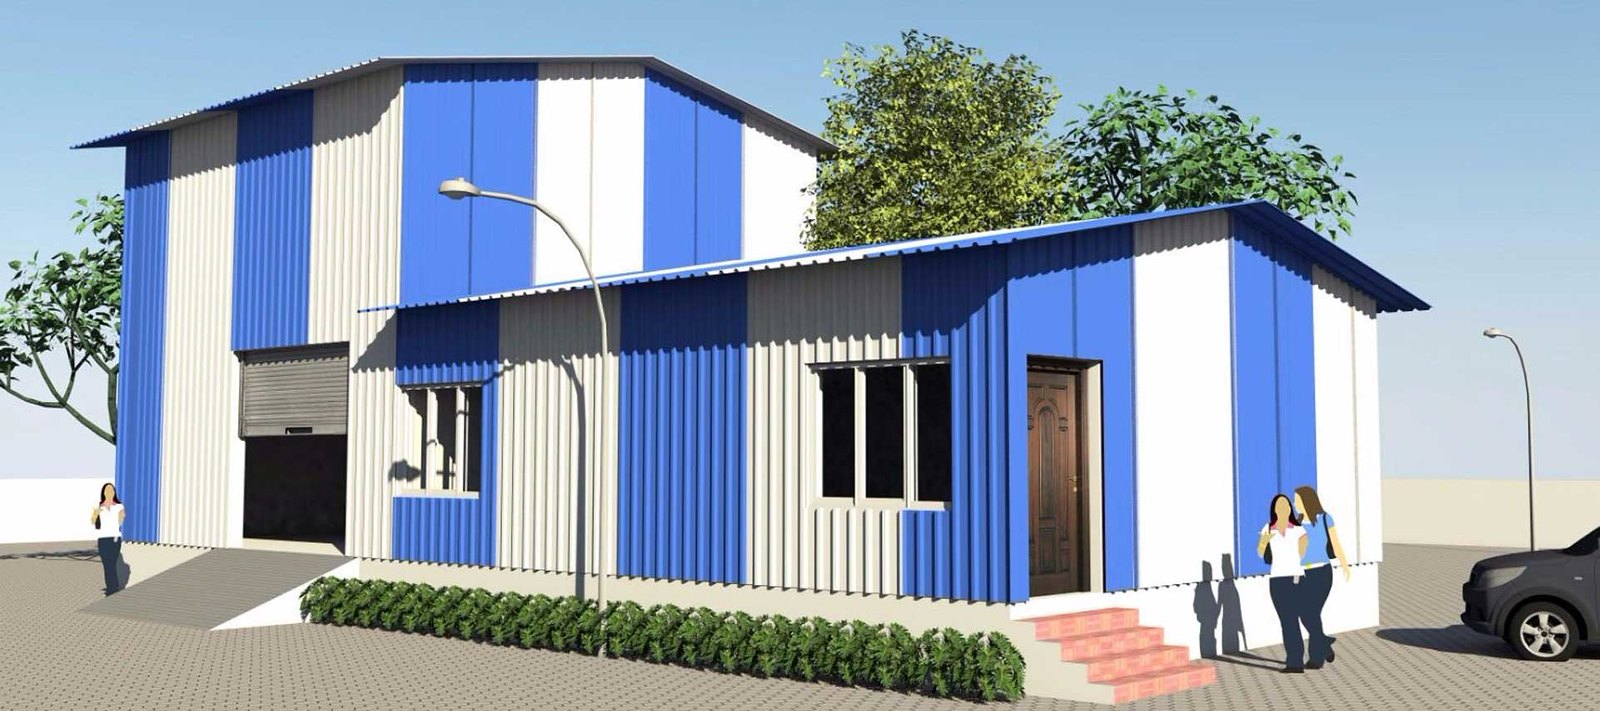 Chennai-Roofings-Enterprises-polycarbonate-industrial-Roofing-metal-Contractors-in-Chennai